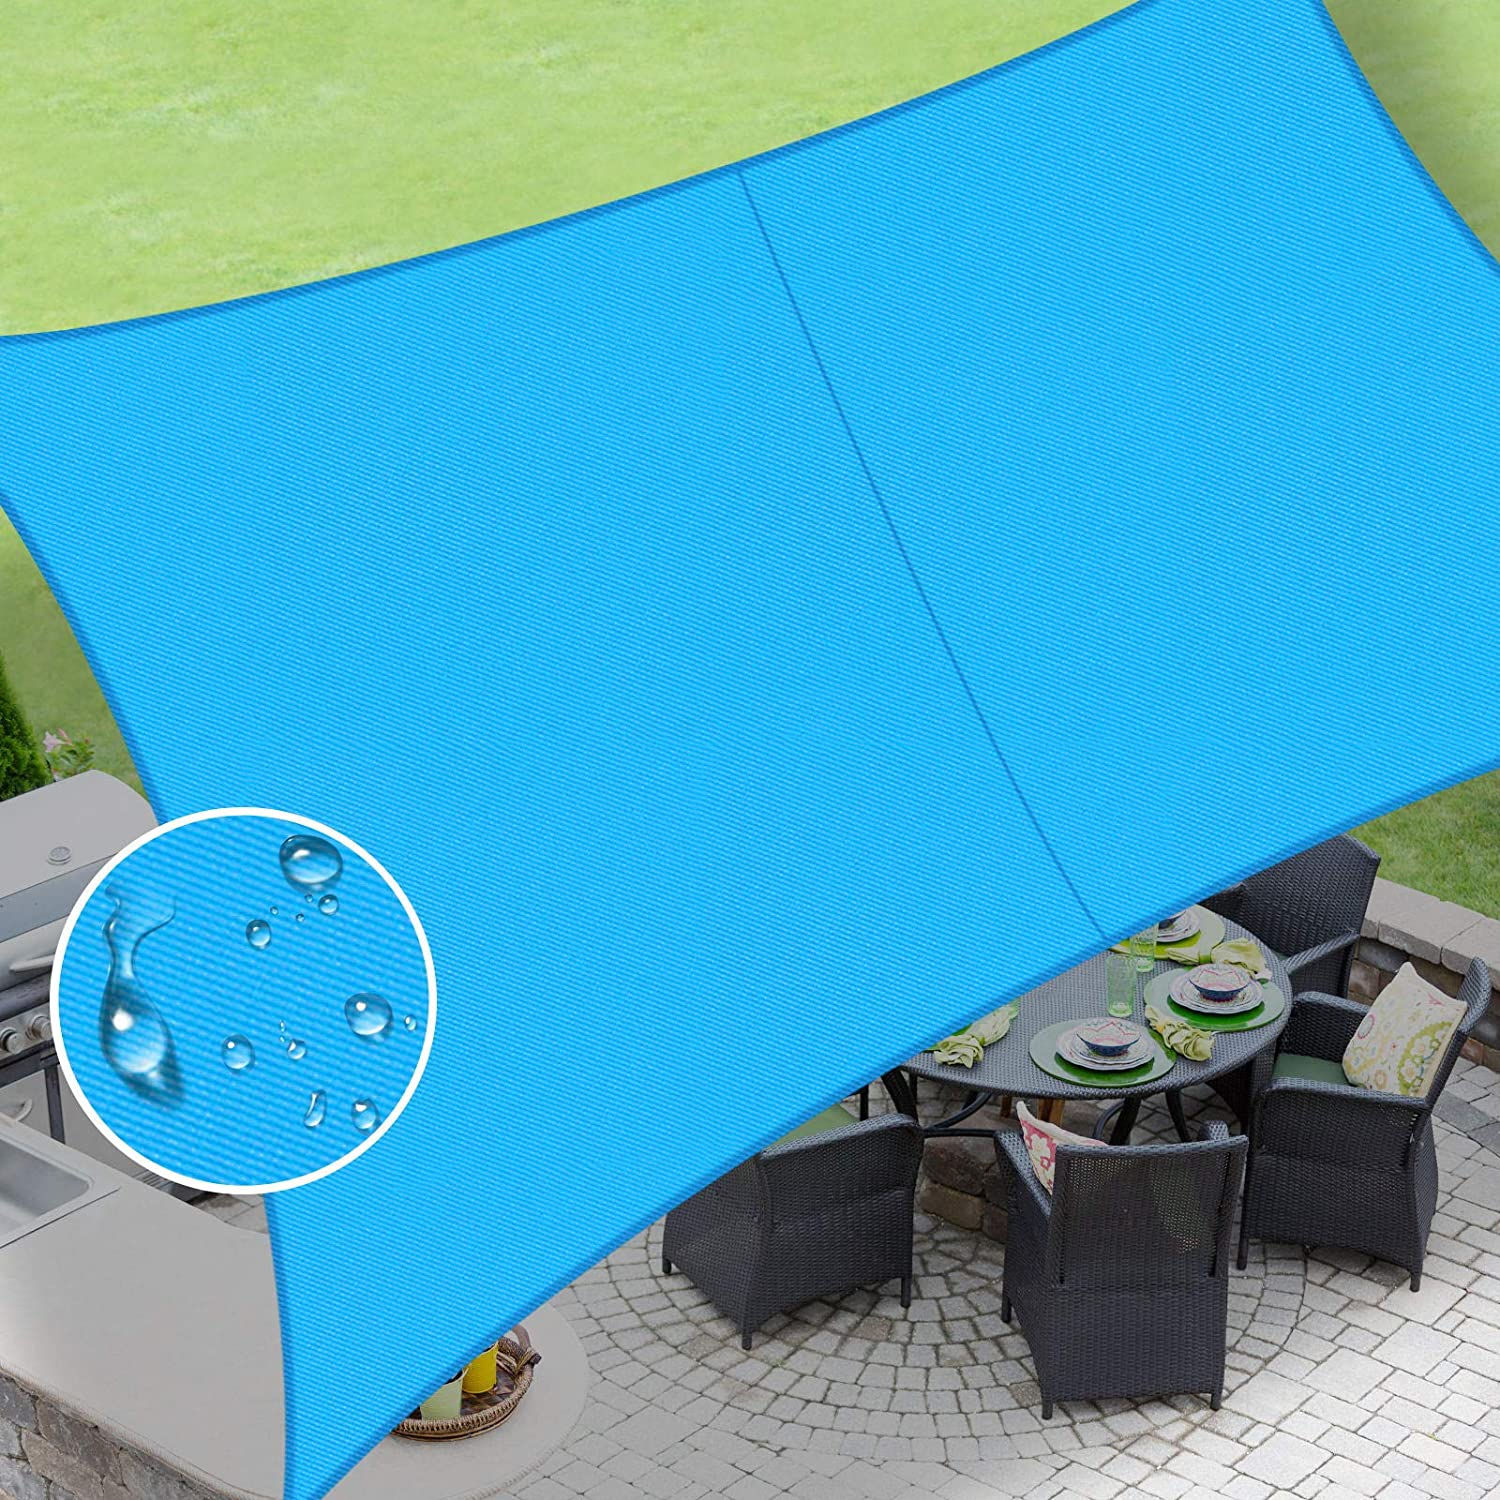 LOVE STORY Waterproof 10'×10' Rectangle Turquoise Blue Sun Shade Sail Canopy UV Resistant for Outdoor Patio Garden Backyard